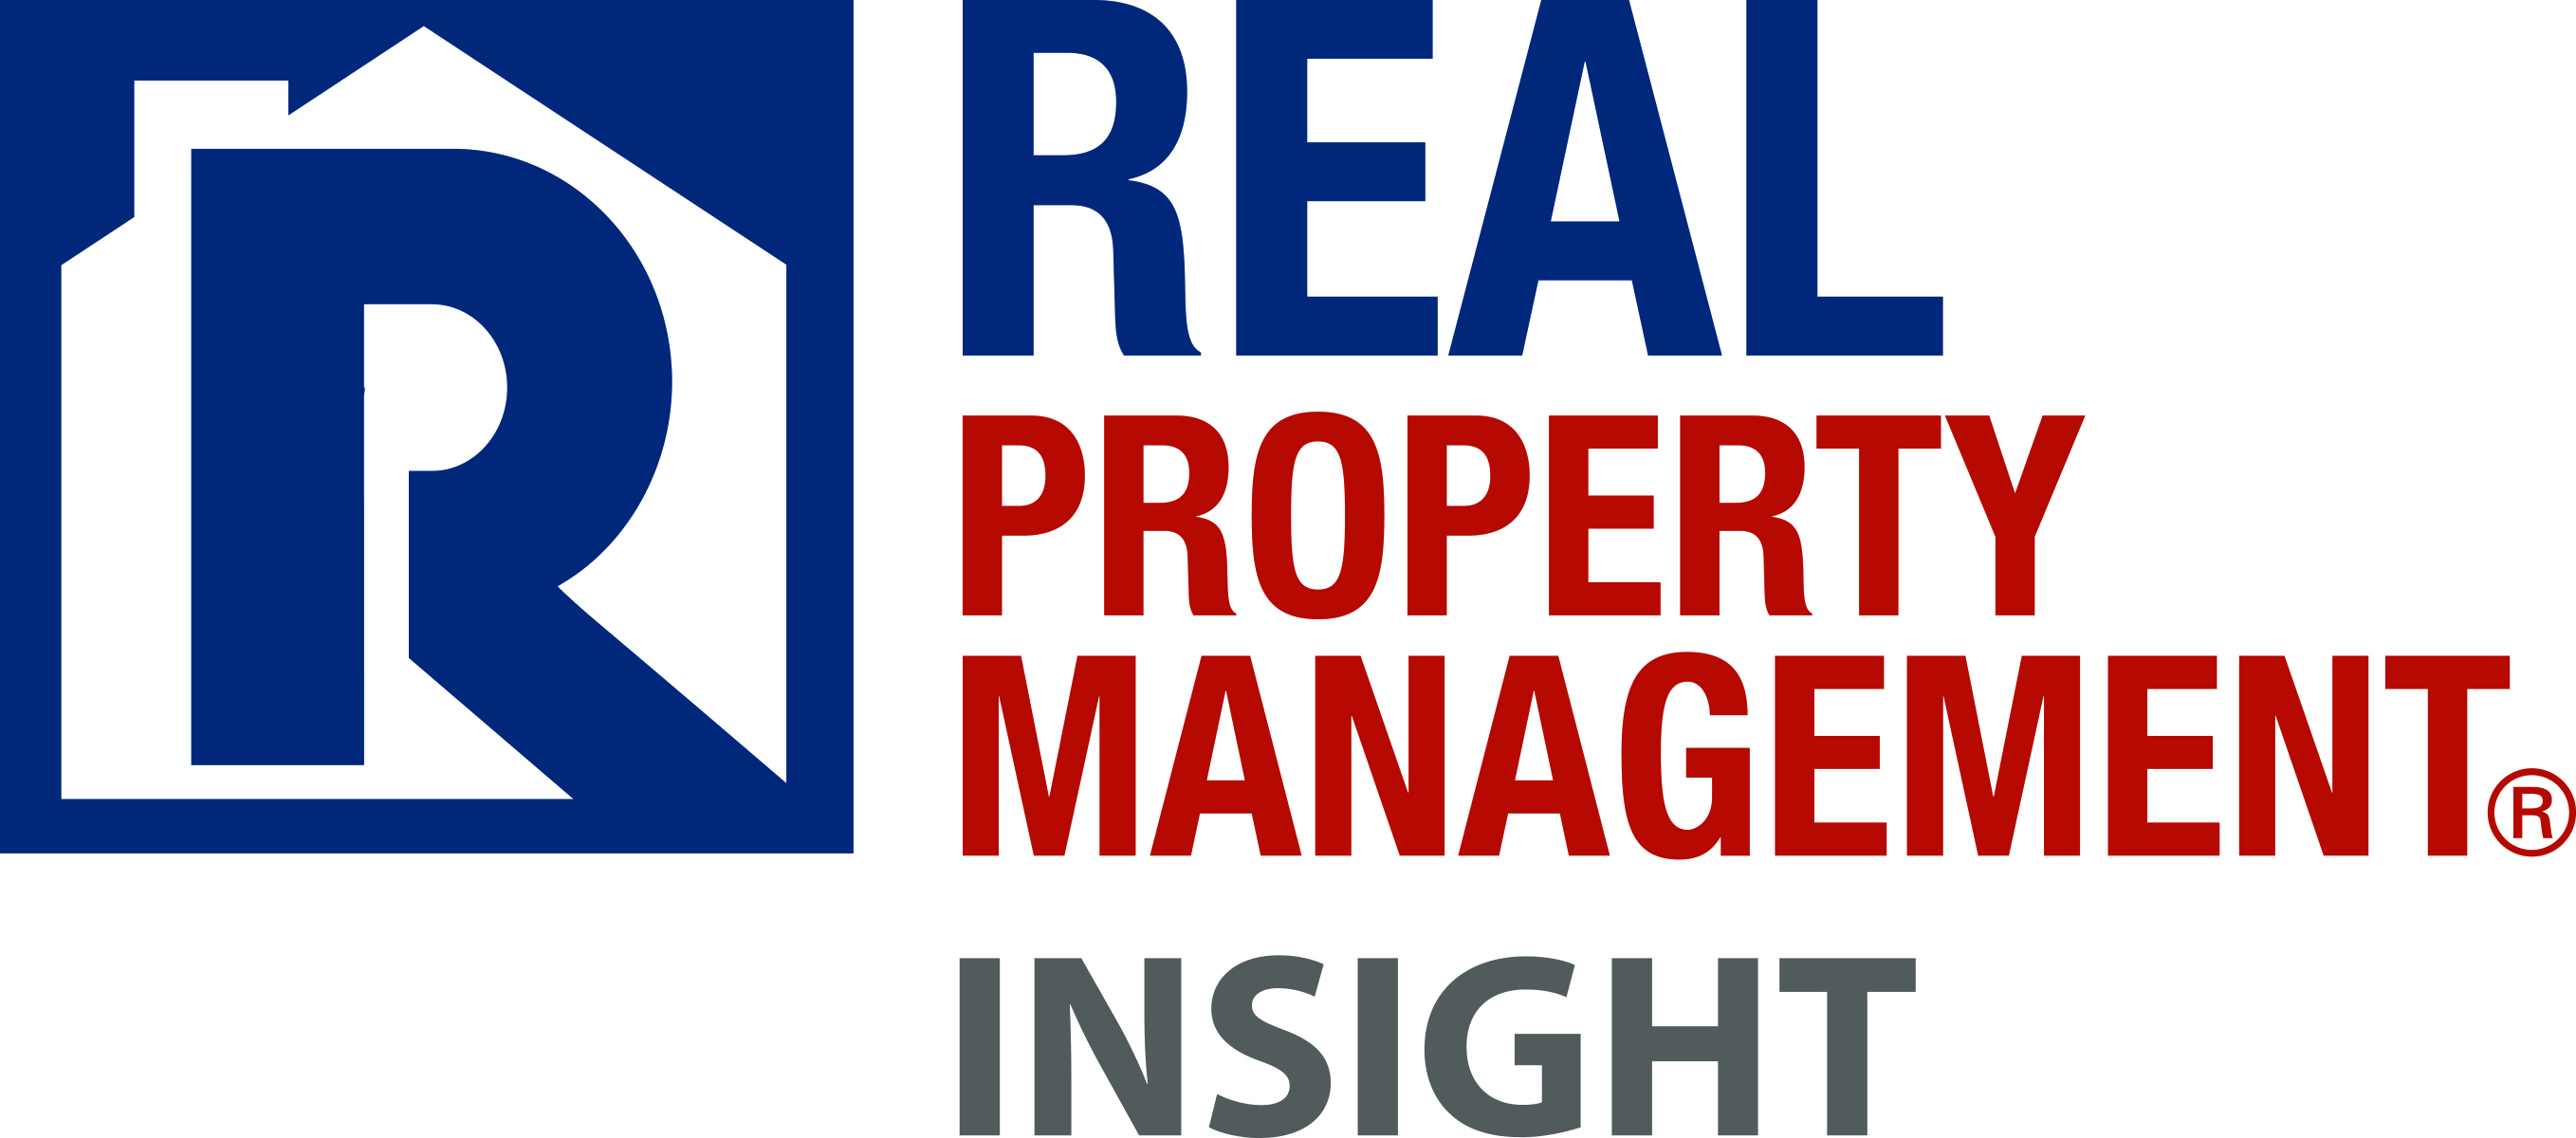 >Real Property Management Insight